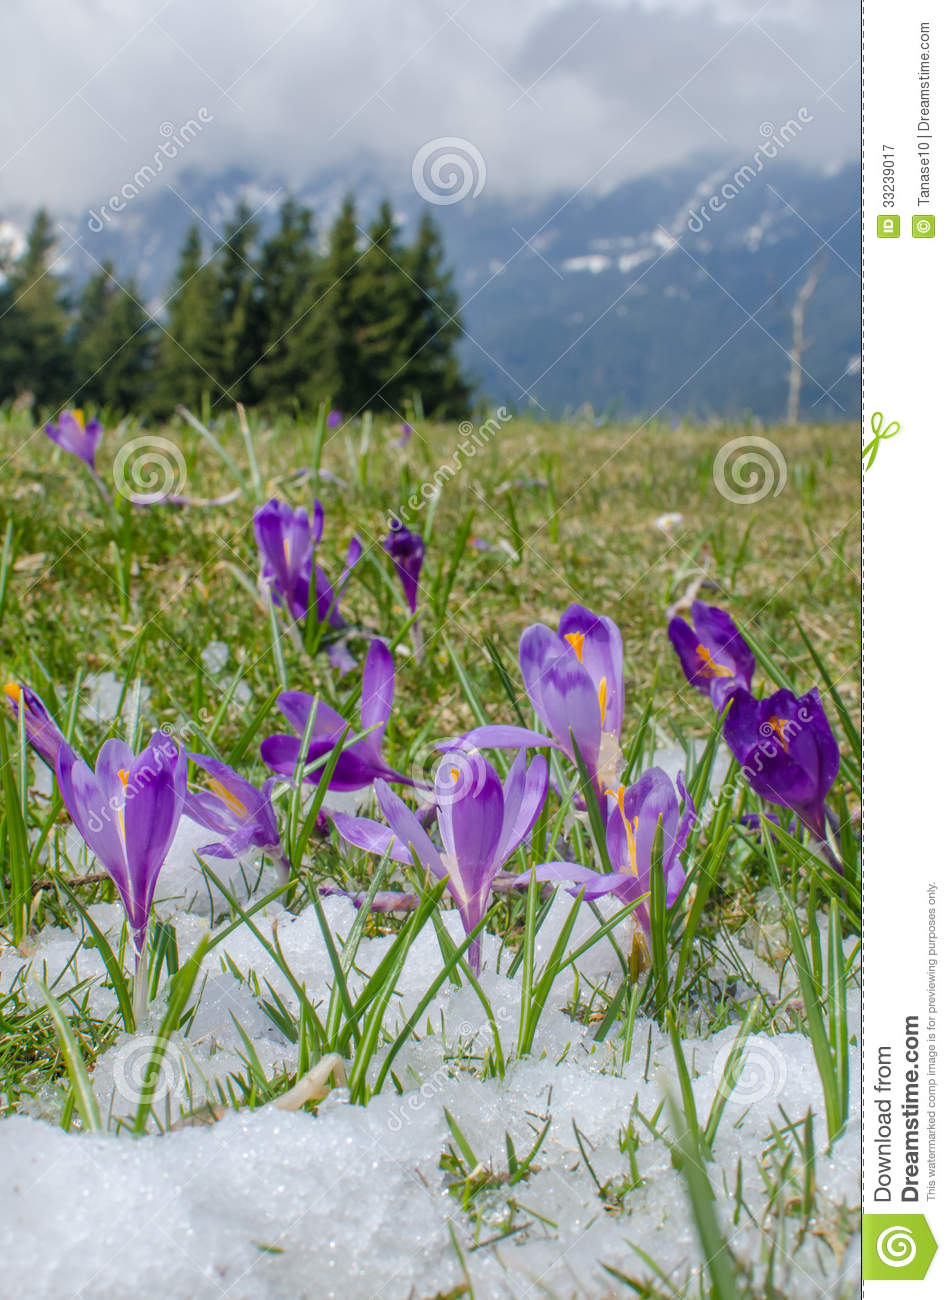 Spring flowers in mountains stock image image of beautiful purple spring flowers in mountains mightylinksfo